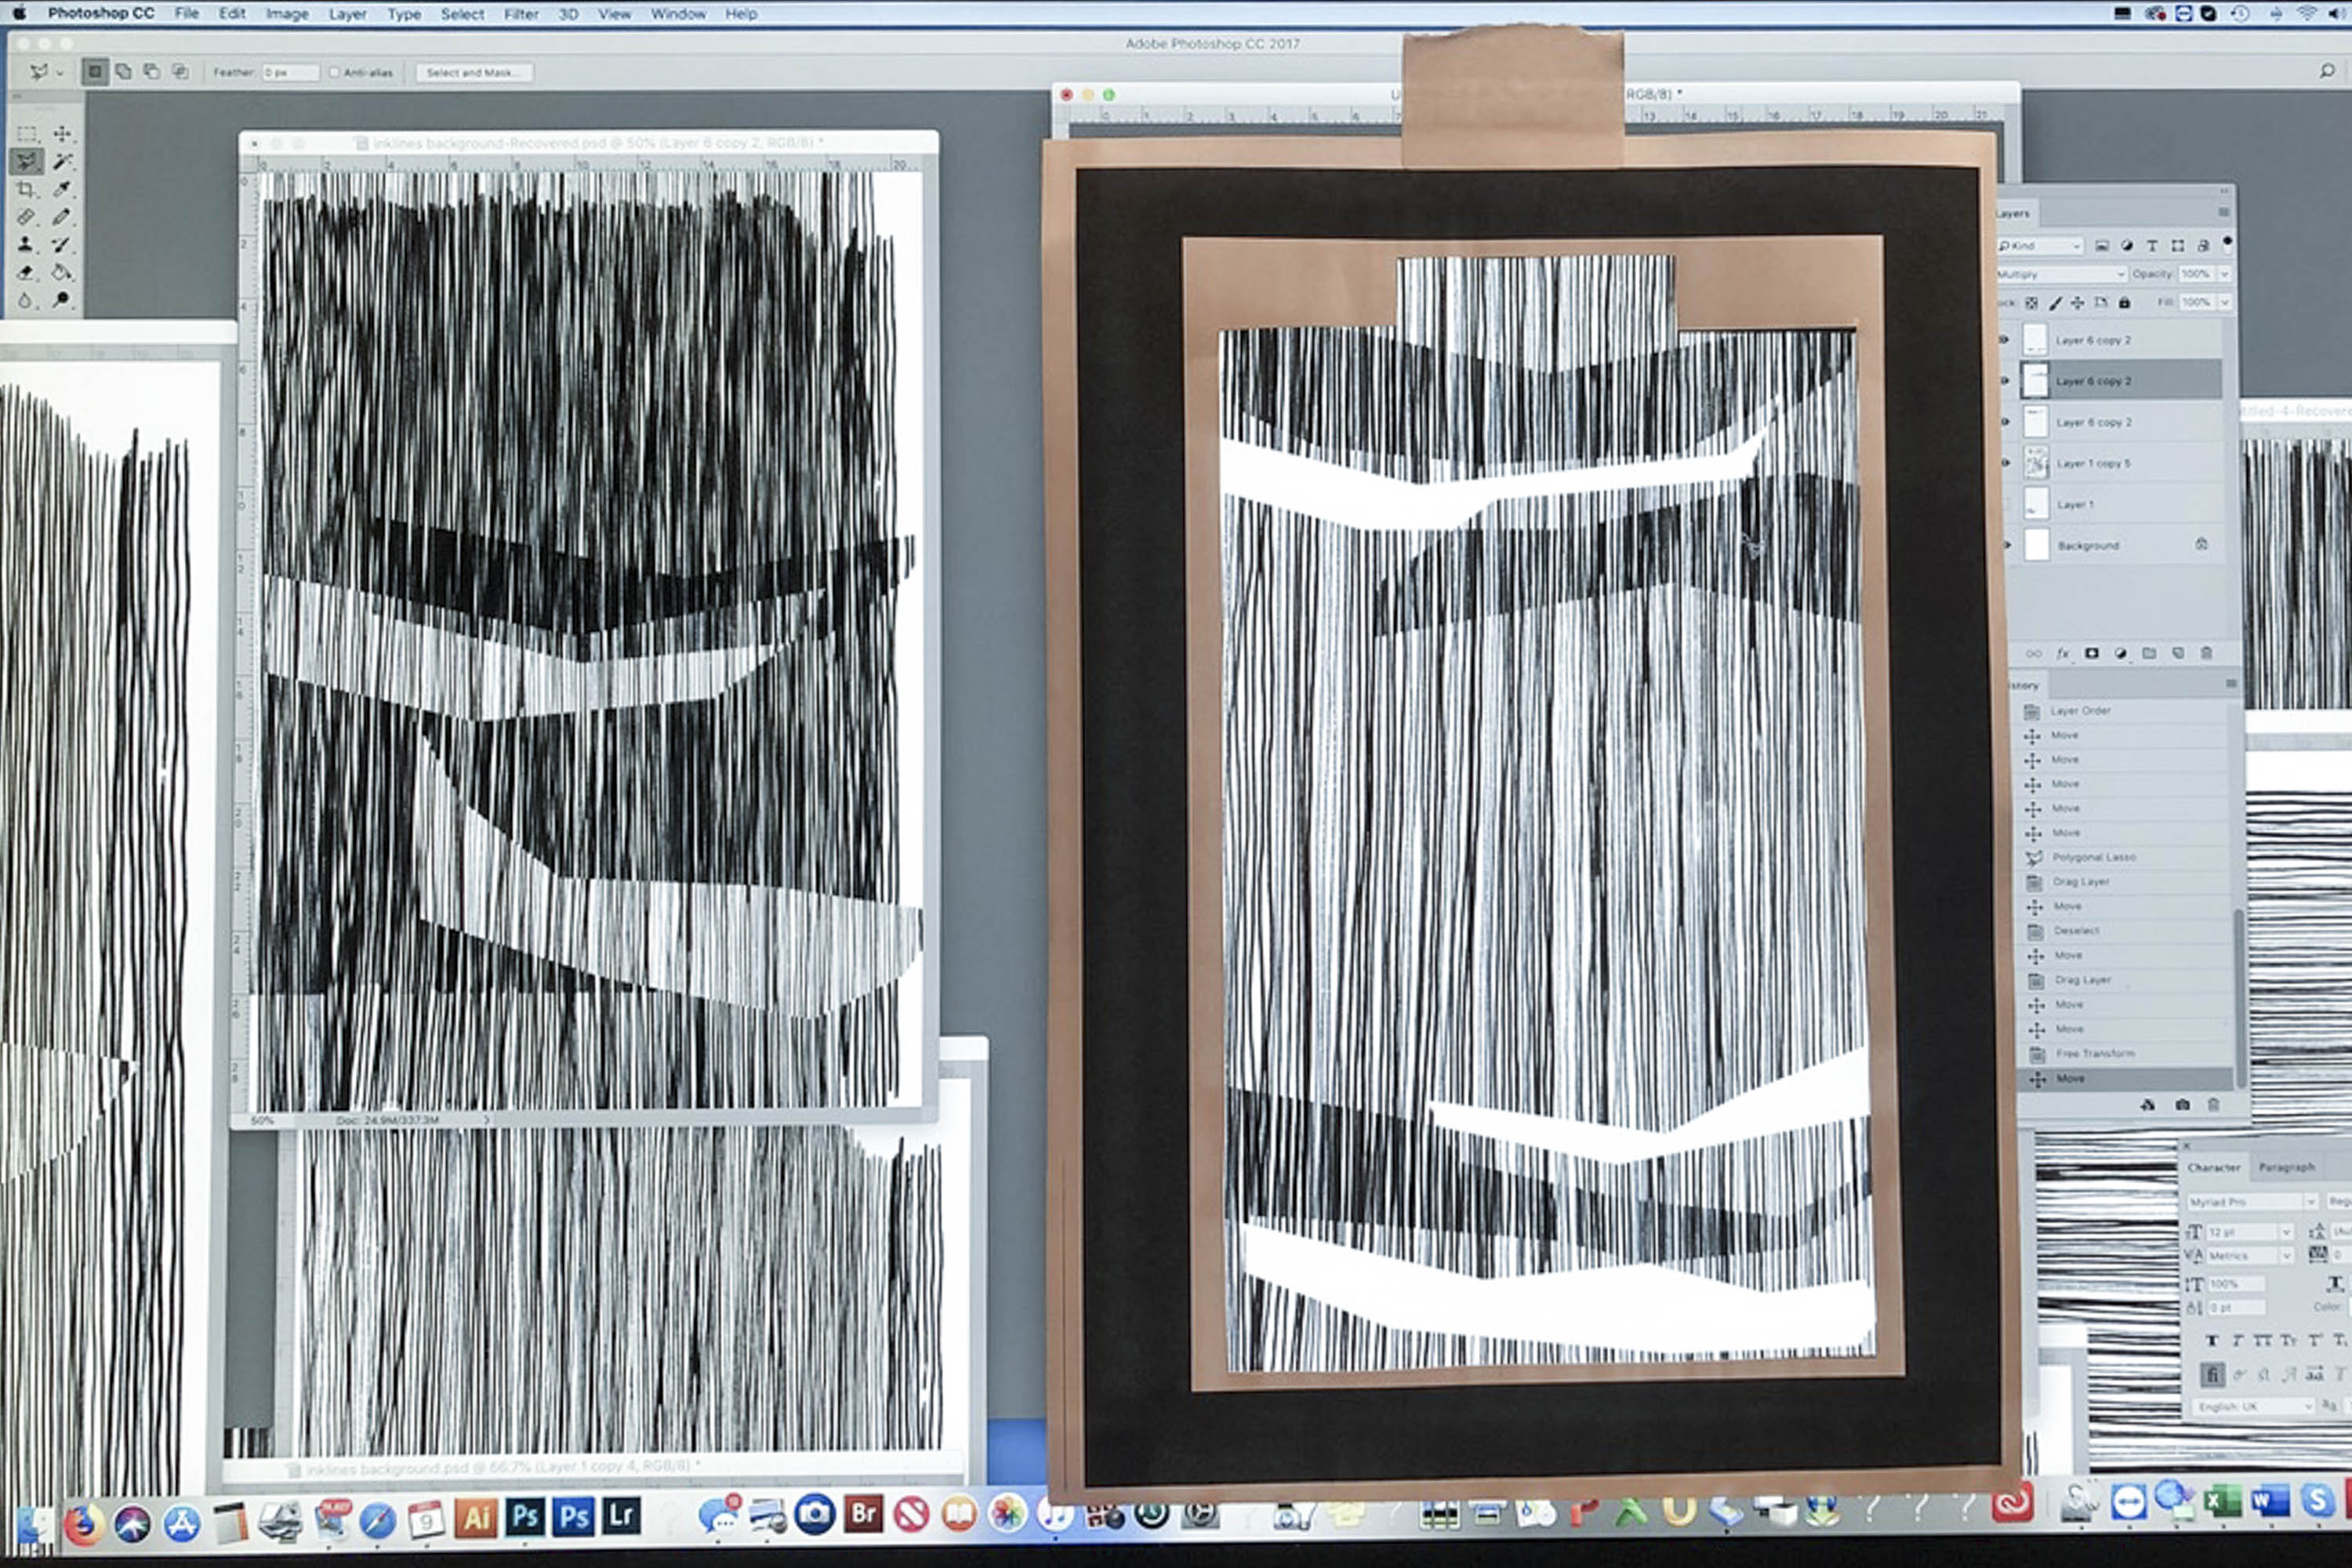 Design process of a textile and knitwear collection. Morifs are pinned to a screen